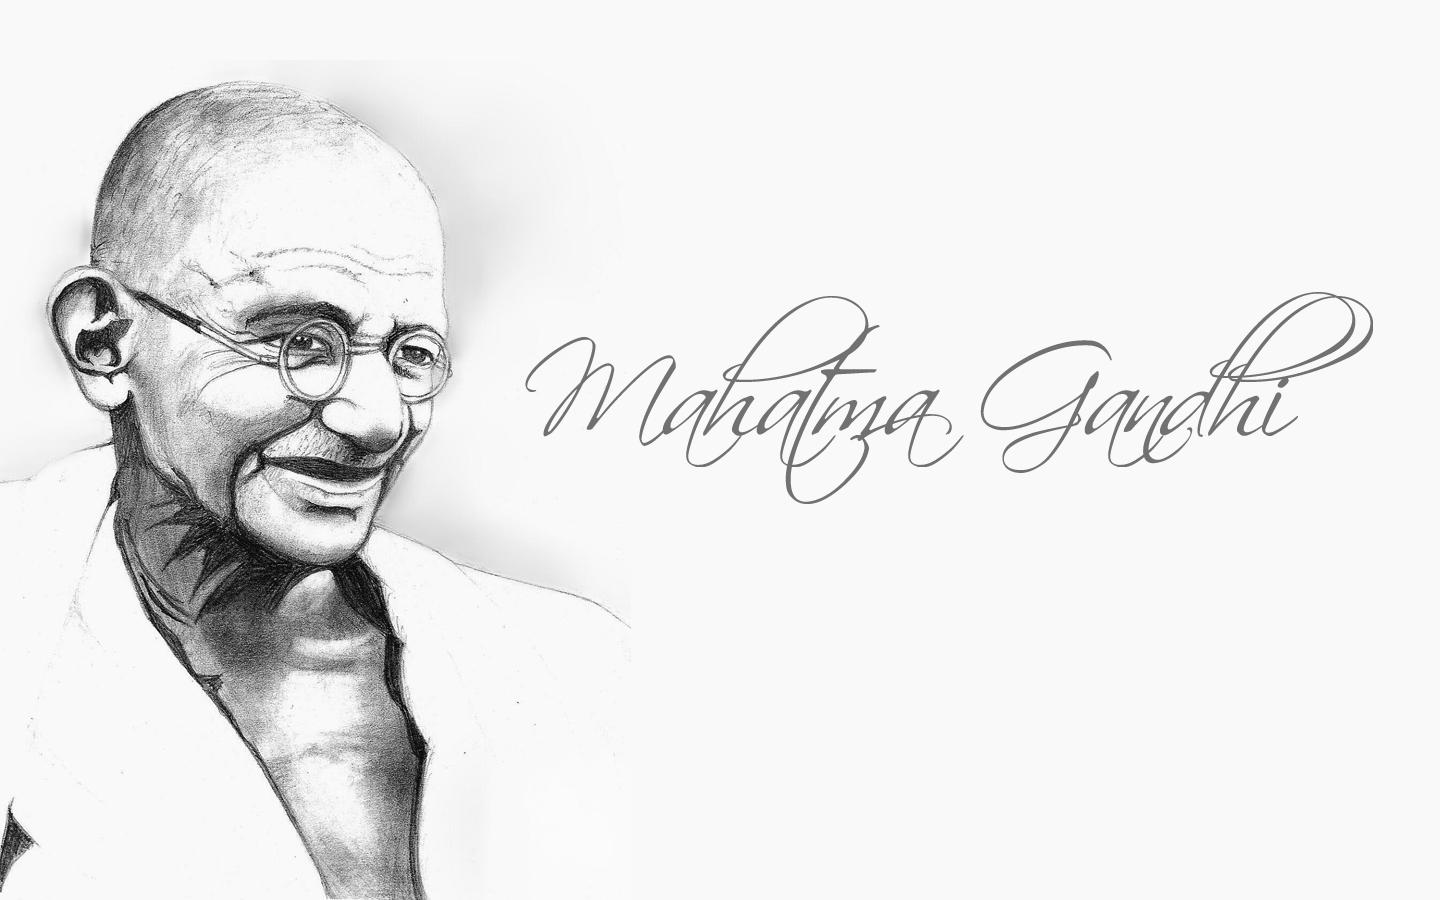 40 Most Beautiful Ghandi Jayanti Hd Pictures Images And 1440x900